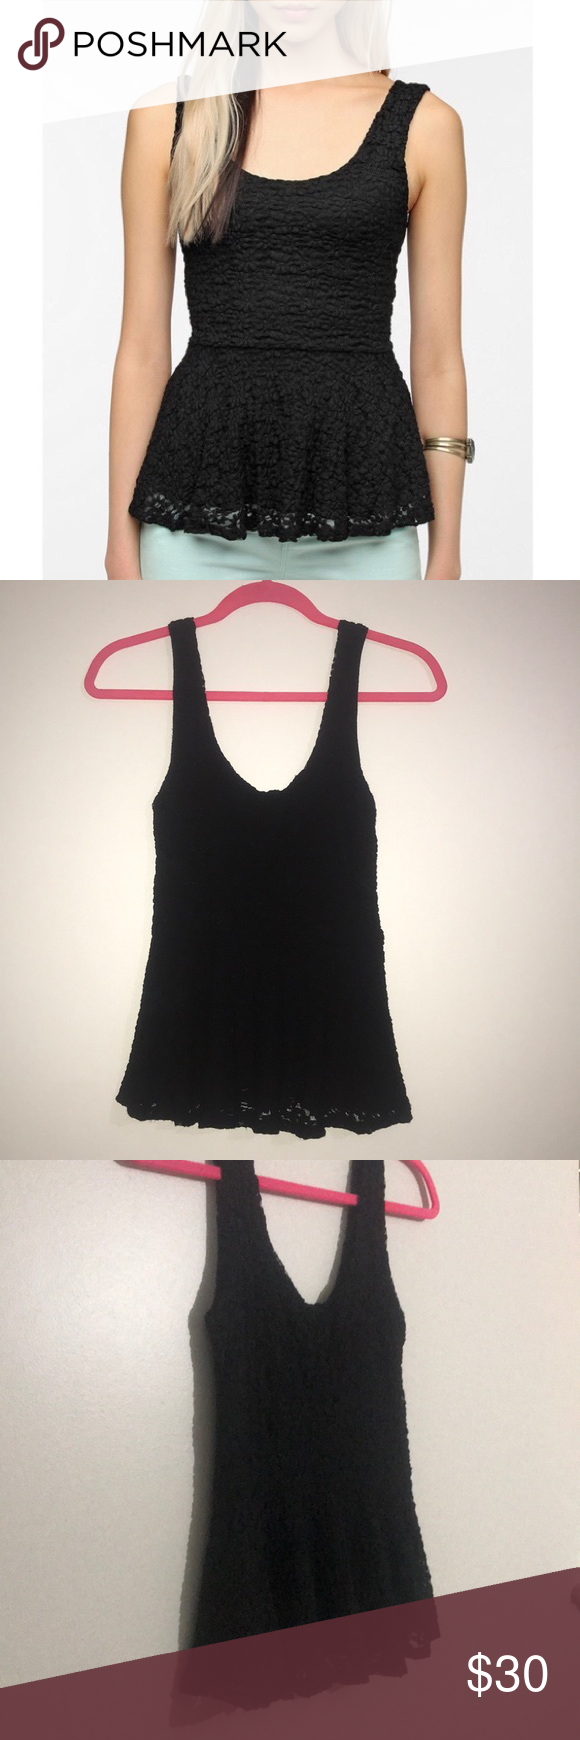 0345a1d3aeade9 Black Pins and Needles Daisy Lace Peplum Top Black lace peplum tank top  from Urban Outfitters